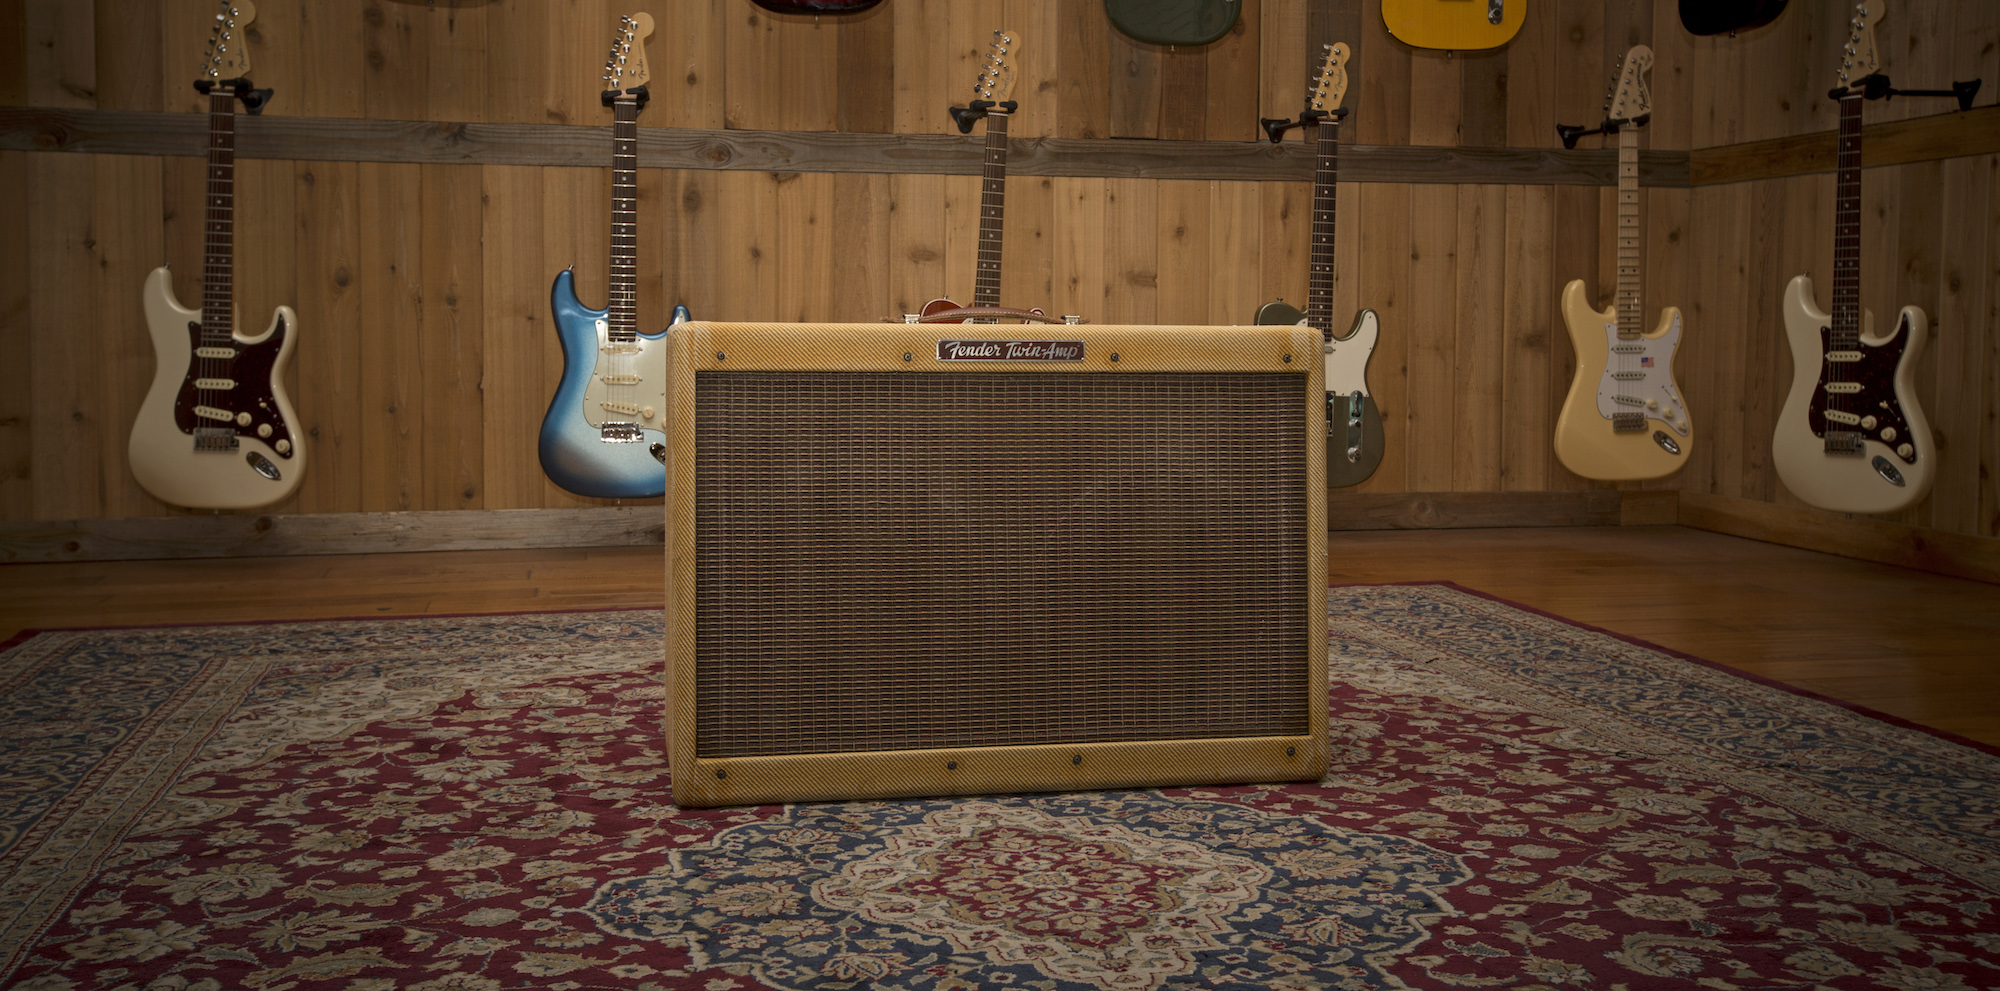 Fender and Joe Bonamassa Announce '59 Twin Amp JB Edition